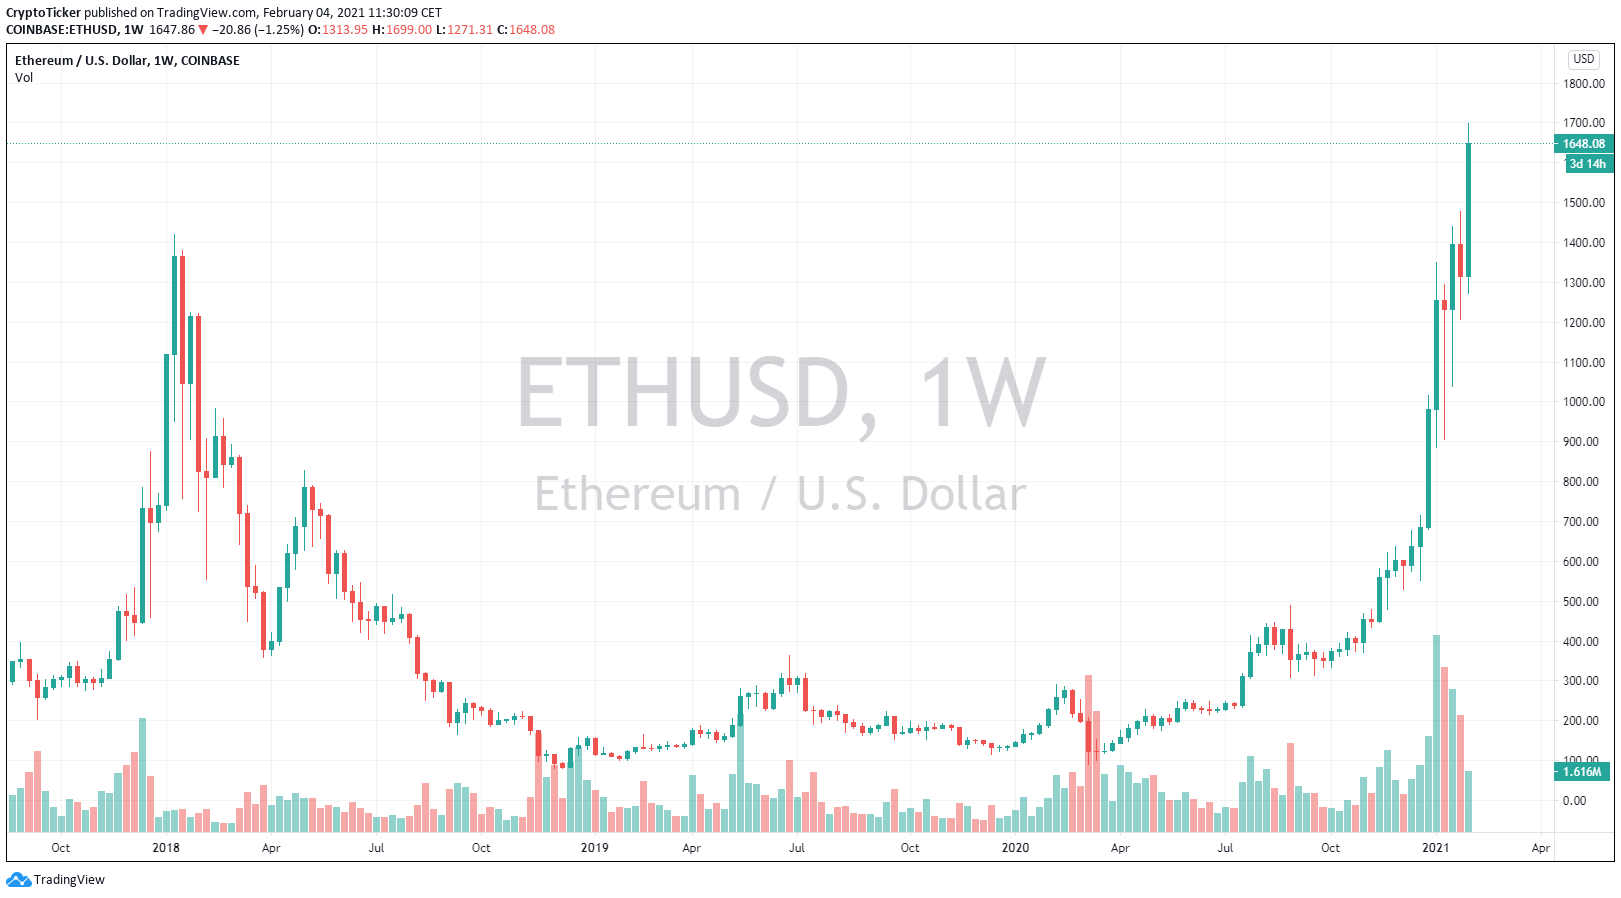 ETH/USD 1-week chart showing ETH doing higher highs